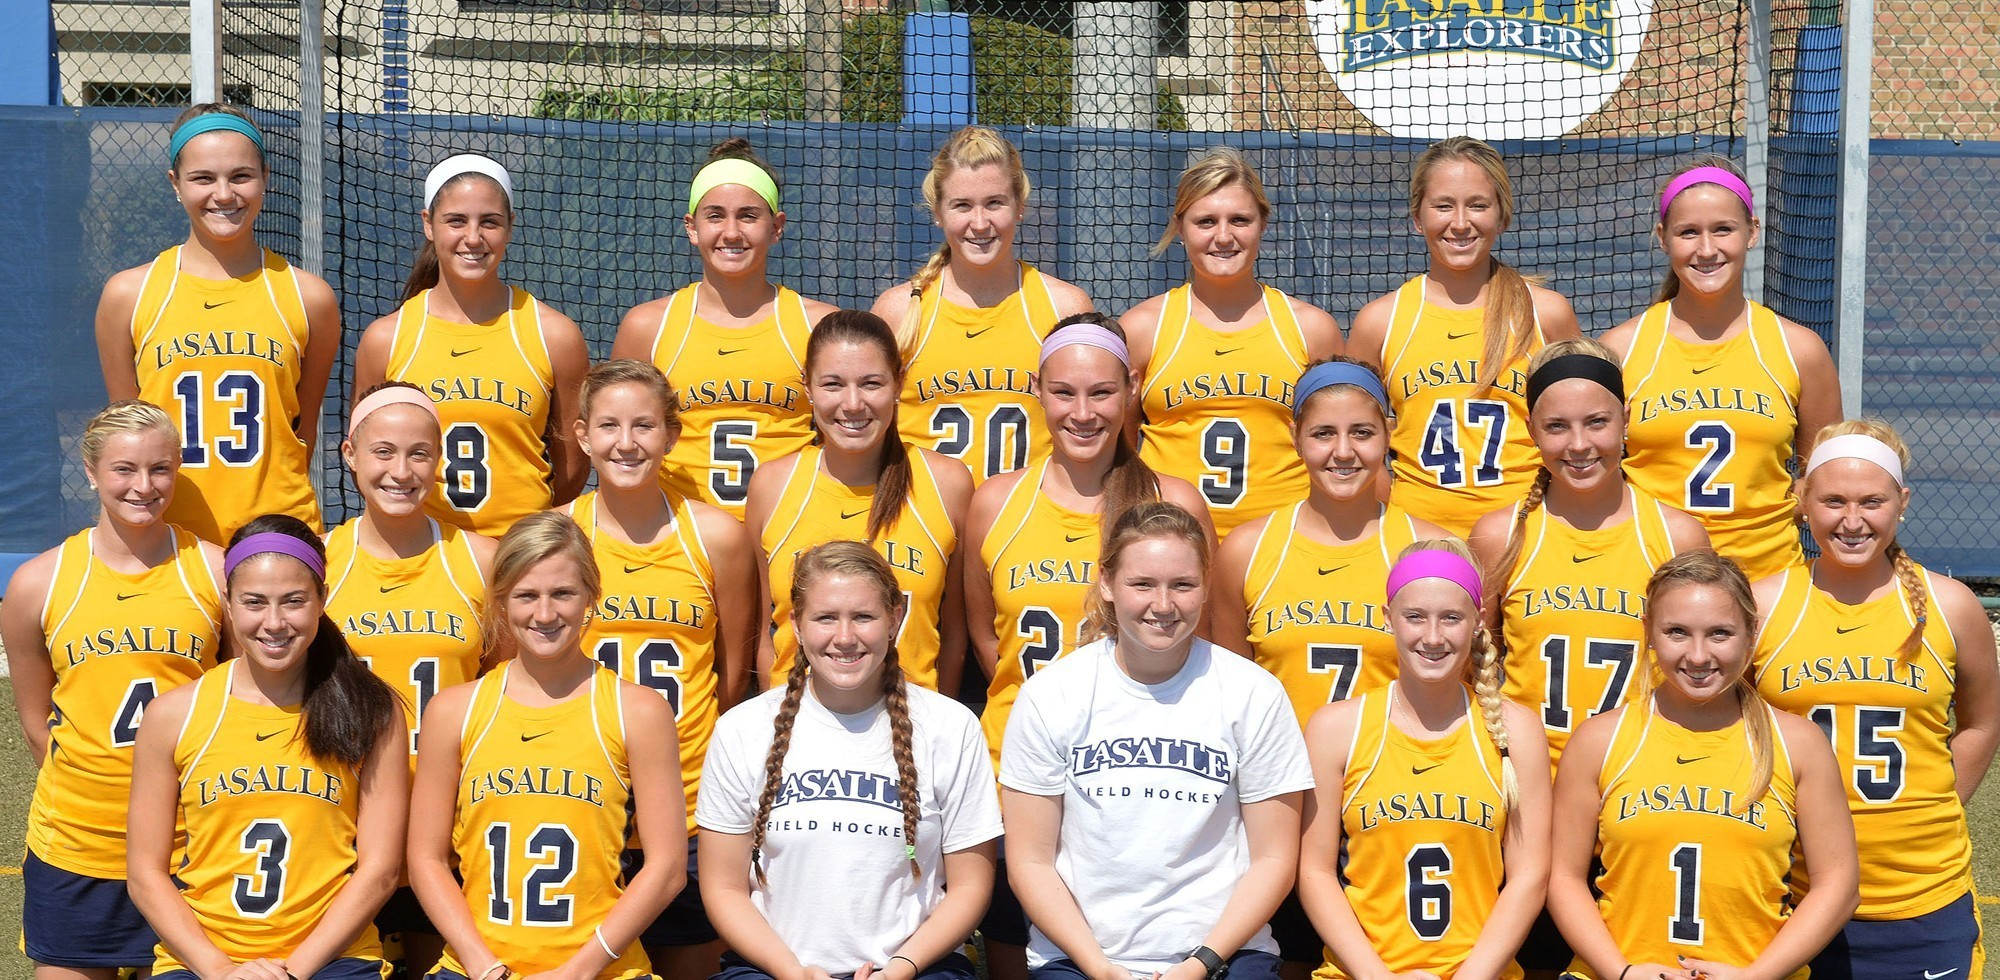 Field Hockey team photo 2014